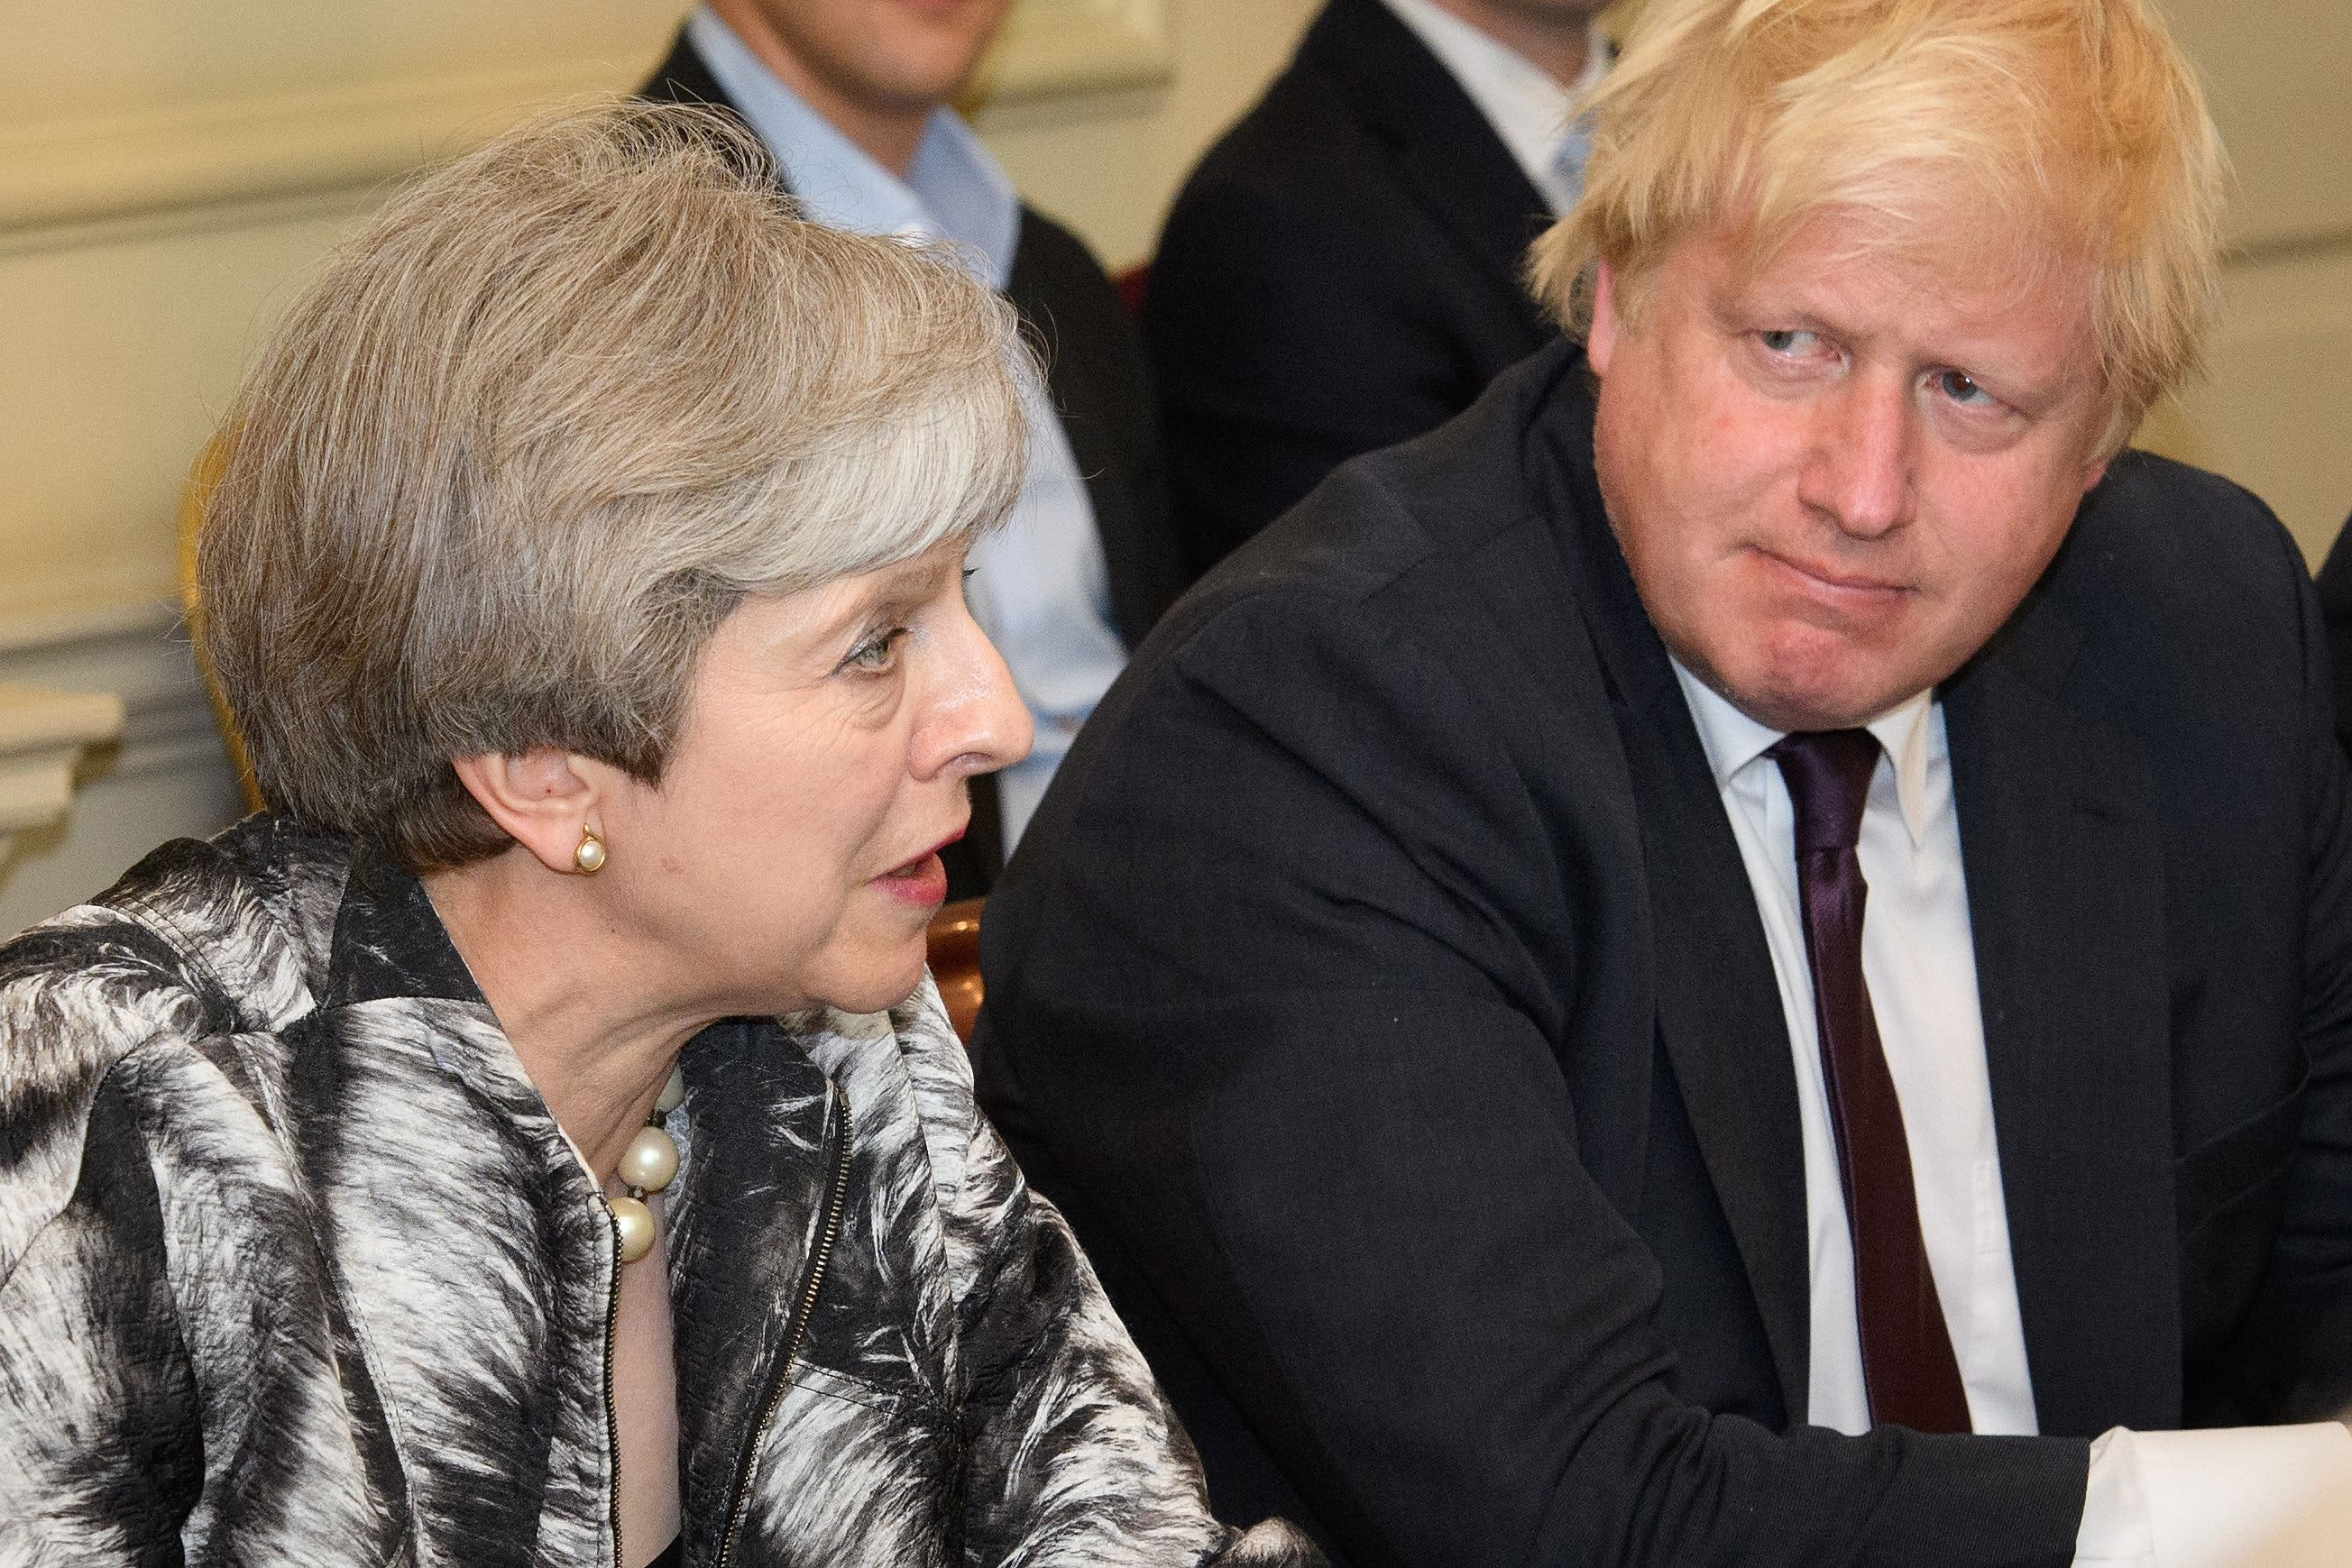 Here's how Boris Johnson's Brexit deal differs from Theresa May's